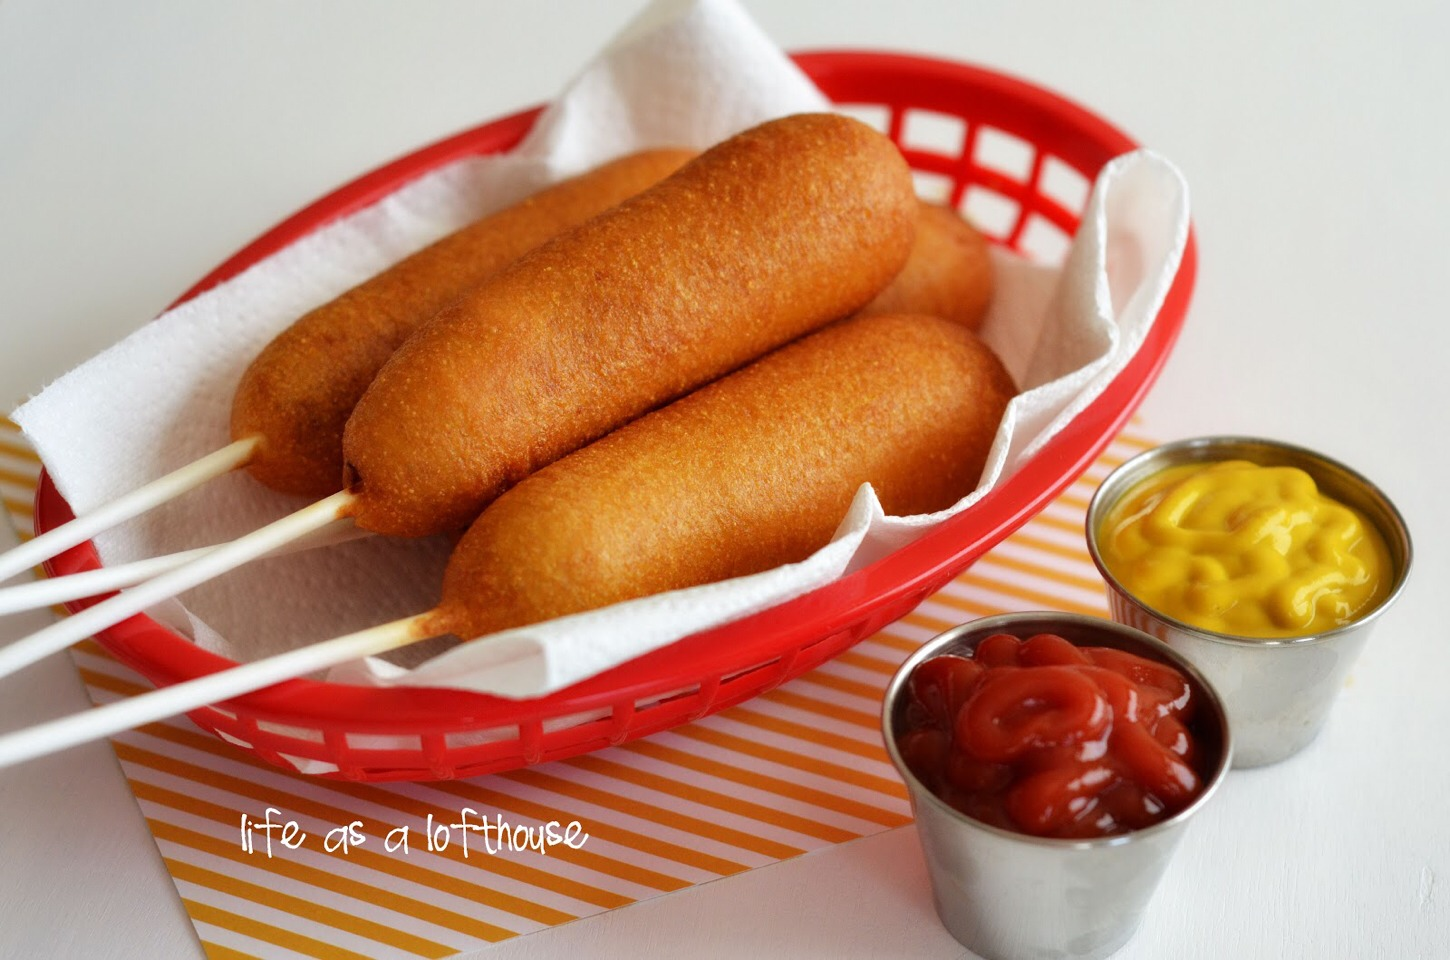 Cut slits in your corndogs to stuff them with condiments.